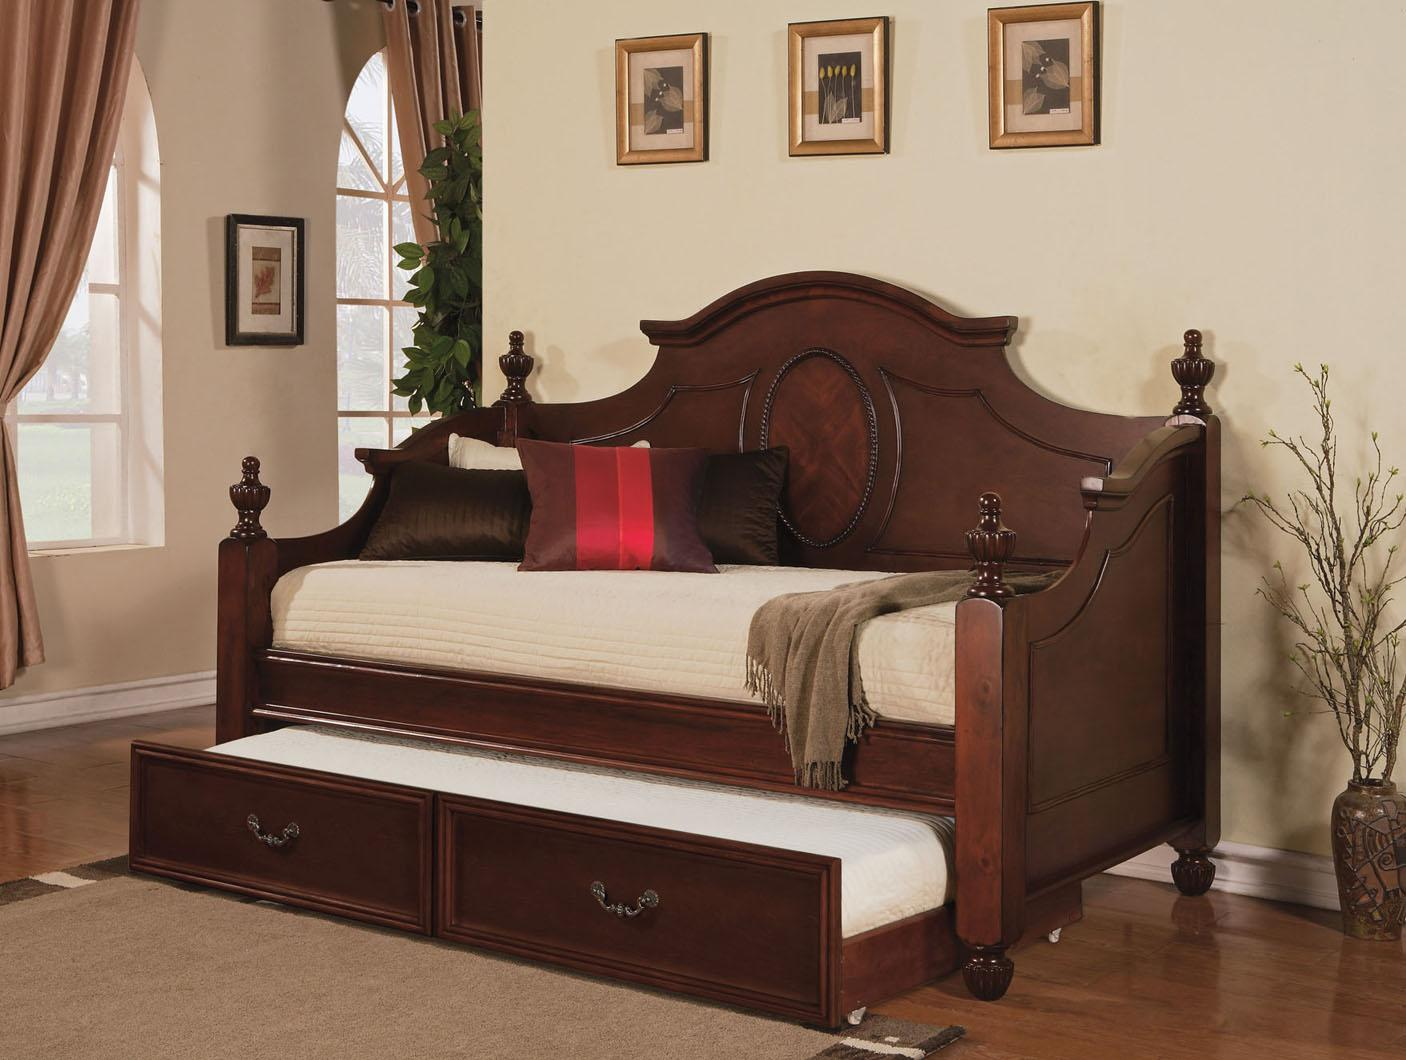 Acme Furniture Classique Daybed w/ Trundle - Item Number: 11850+11851+11852+11853